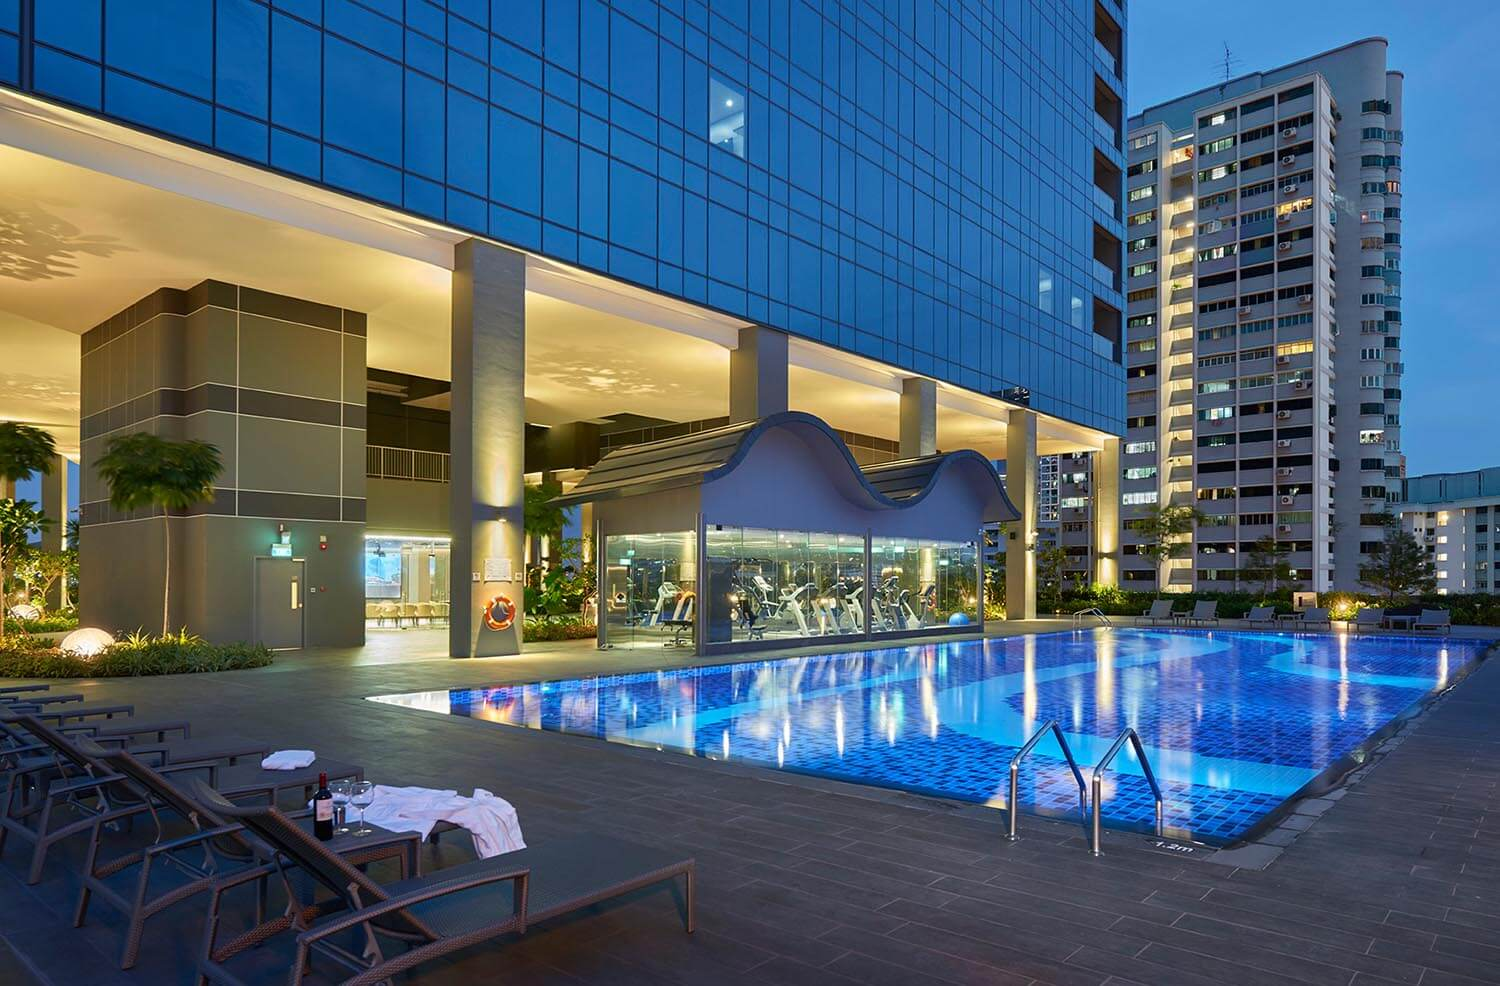 Hotel Boss Sky terrace and swimming pool with gym